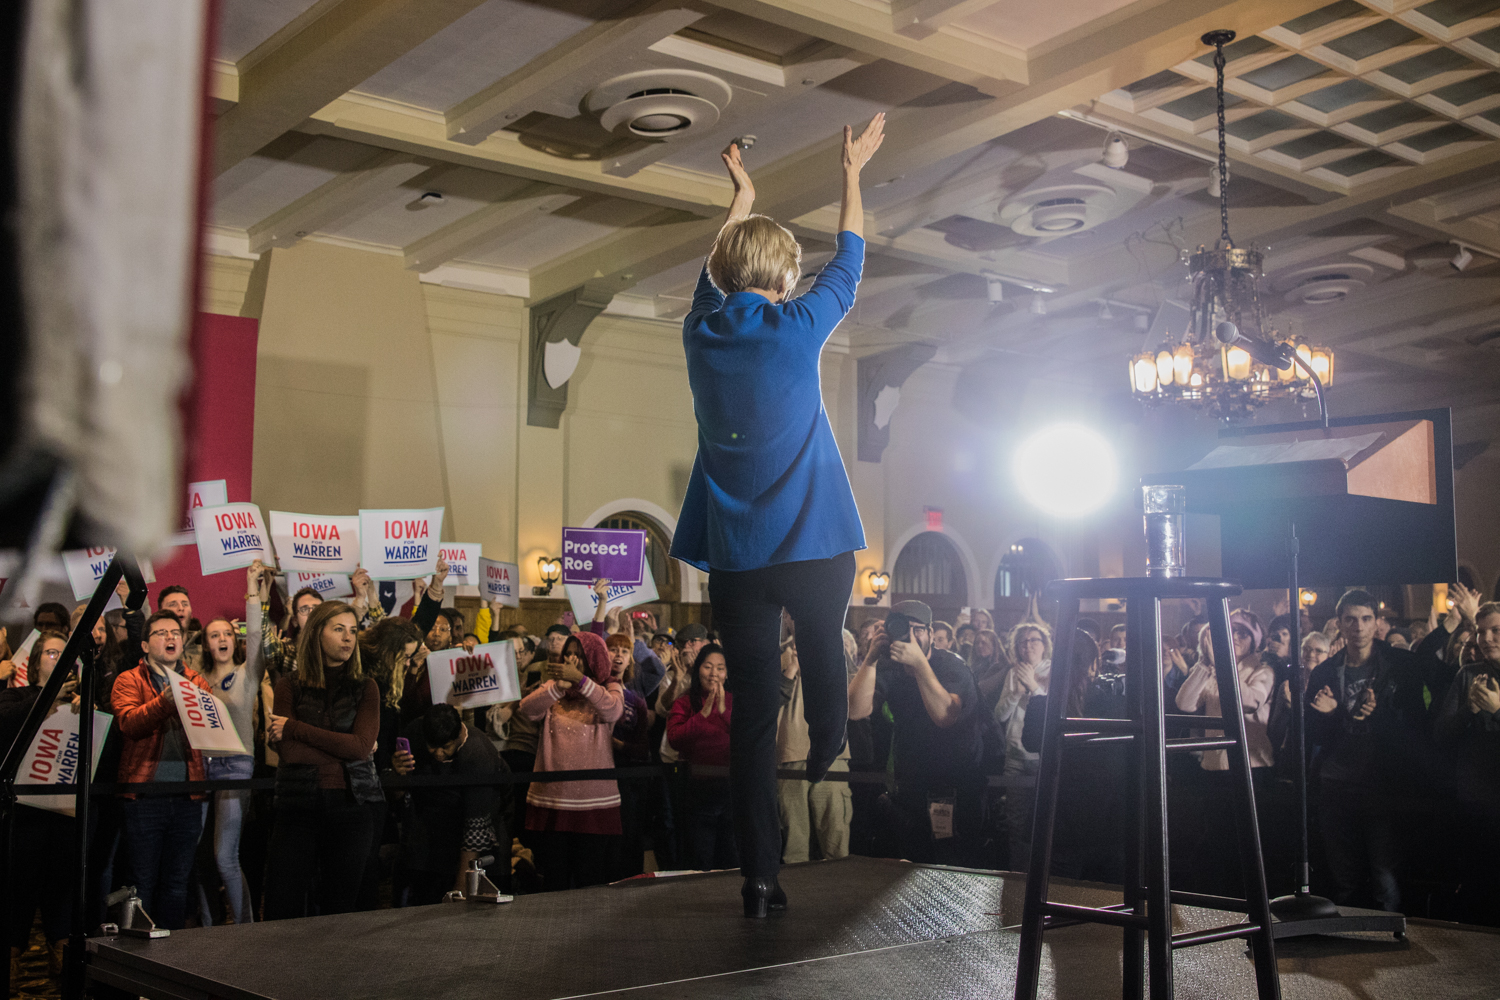 Sen.+Elizabeth+Warren+%28D-Mass.%29+speaks+during+a+campaign+rally+in+the+IMU+on+Sunday%2C+February+10%2C+2019.